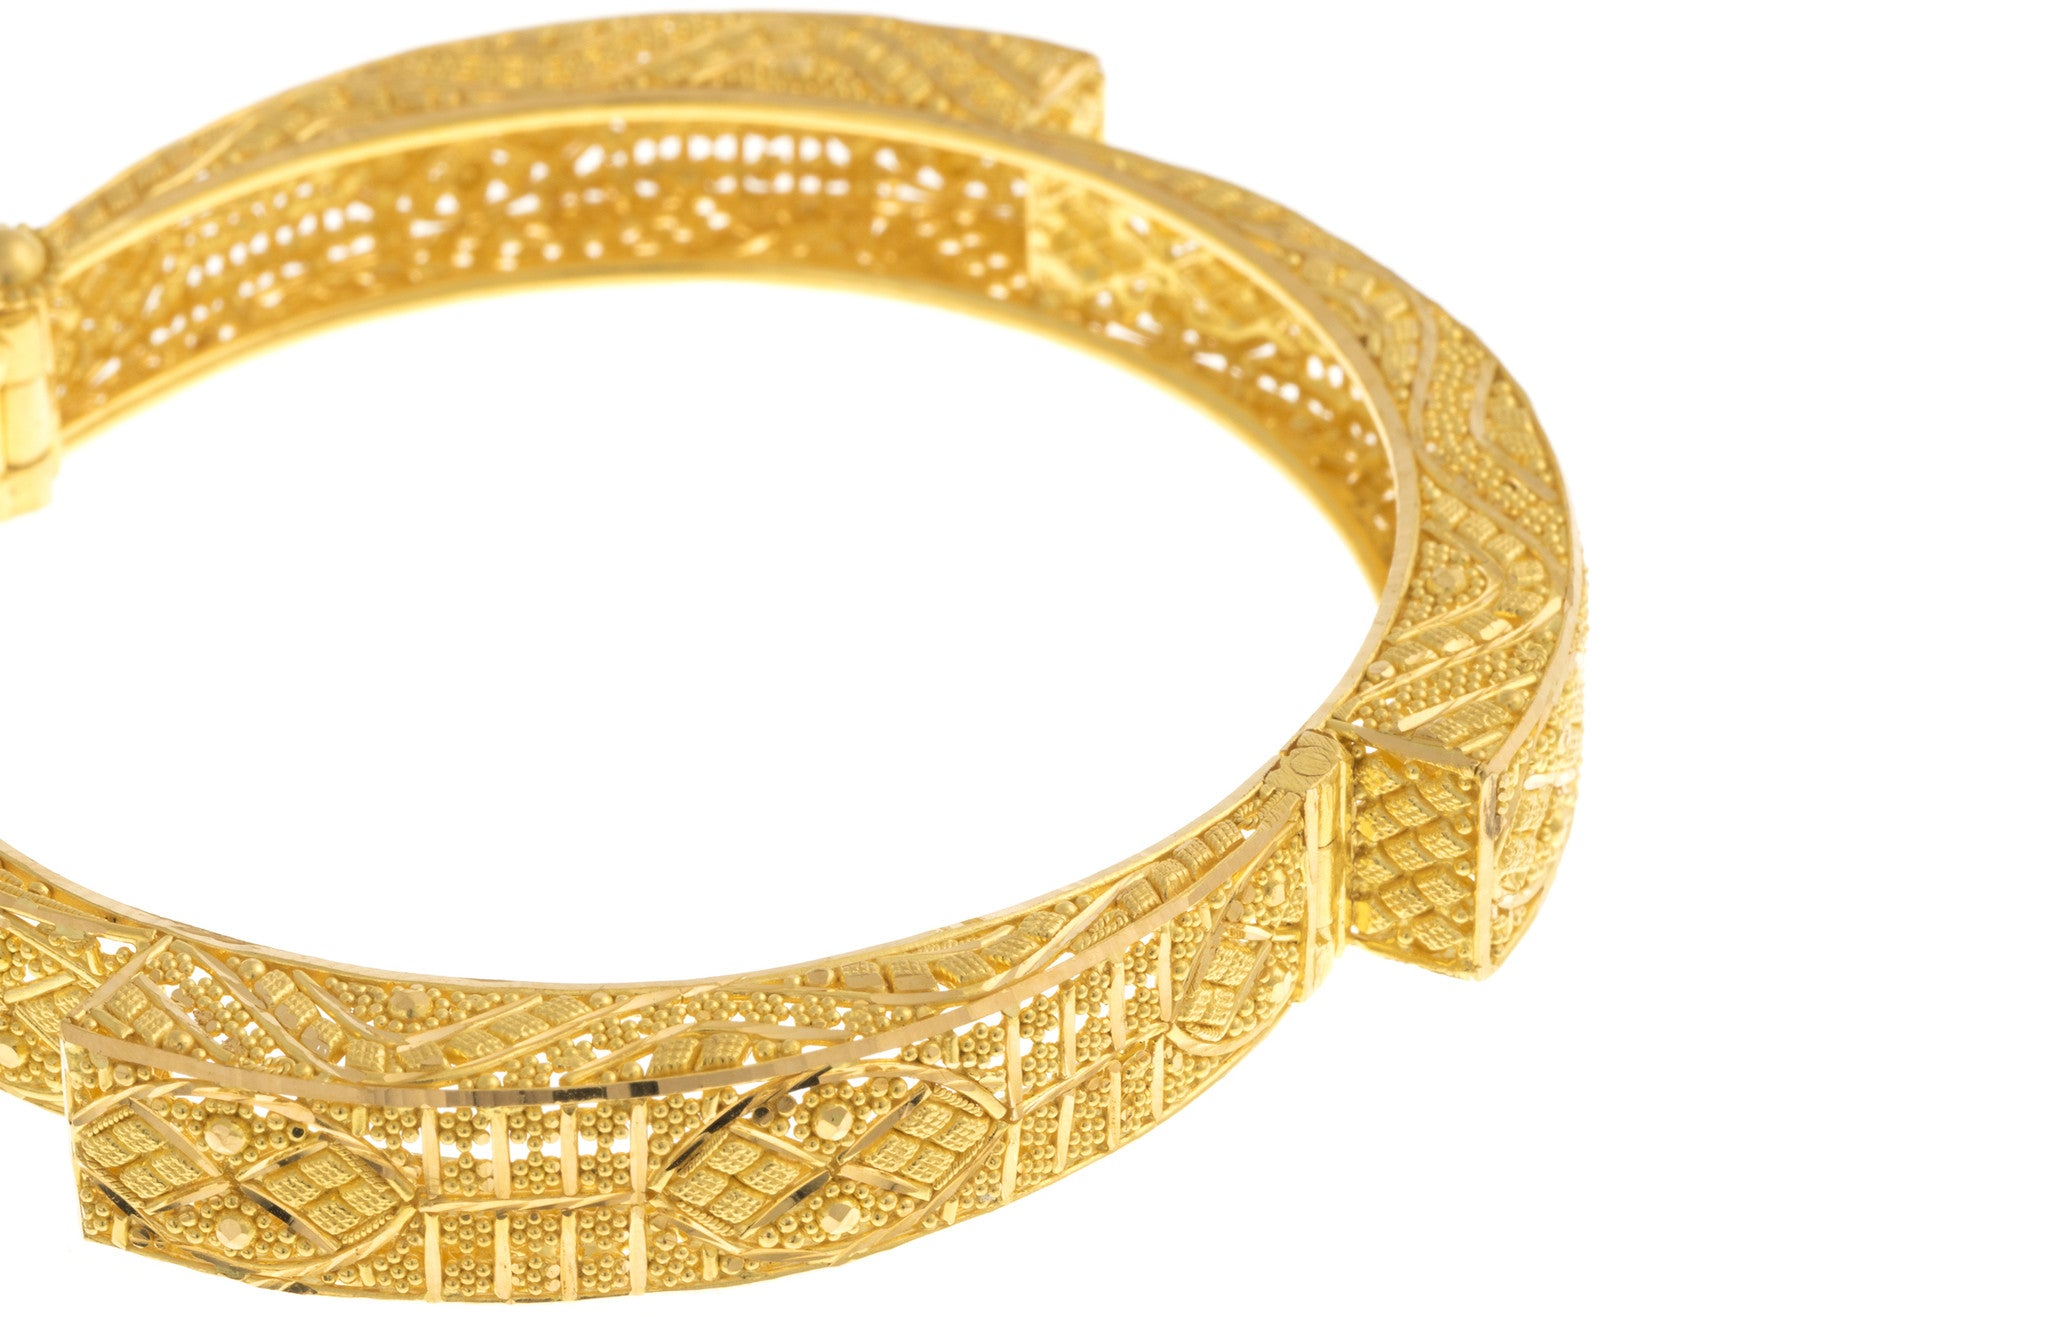 Filigree 22ct Yellow Gold Bangle, Minar Jewellers - 7